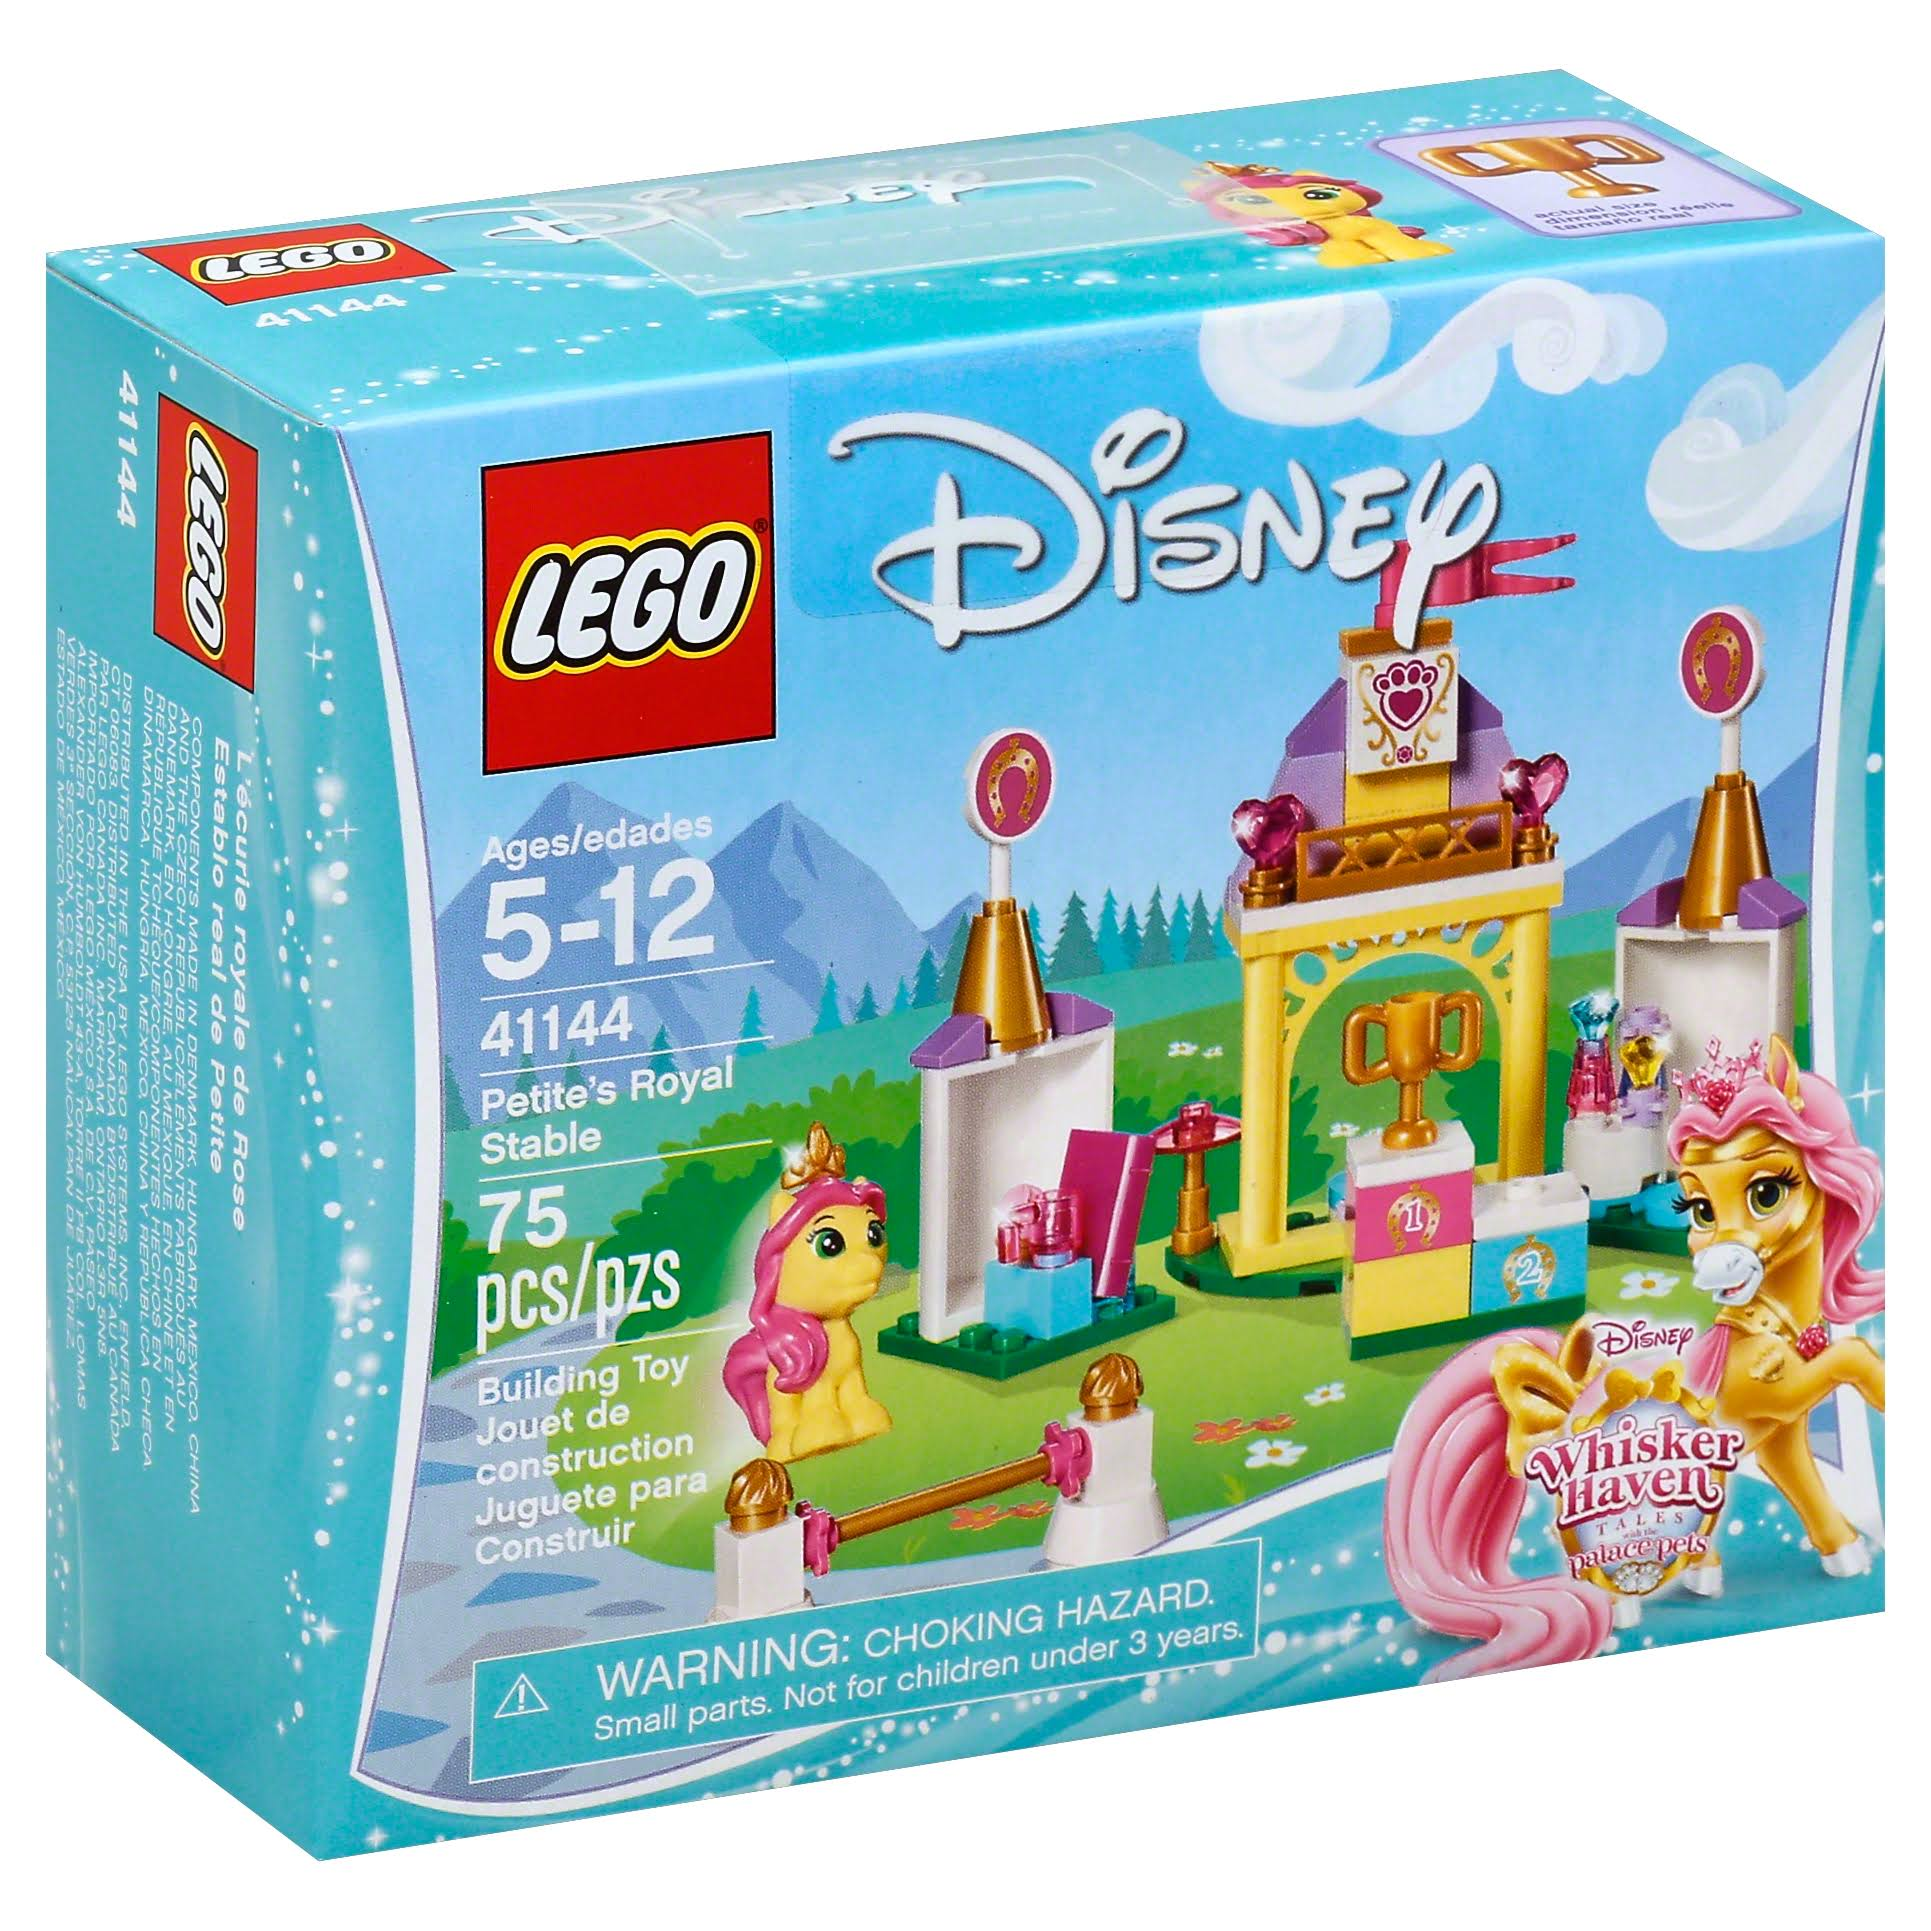 Lego Disney Princess Petite's Royal Stable Building Kit